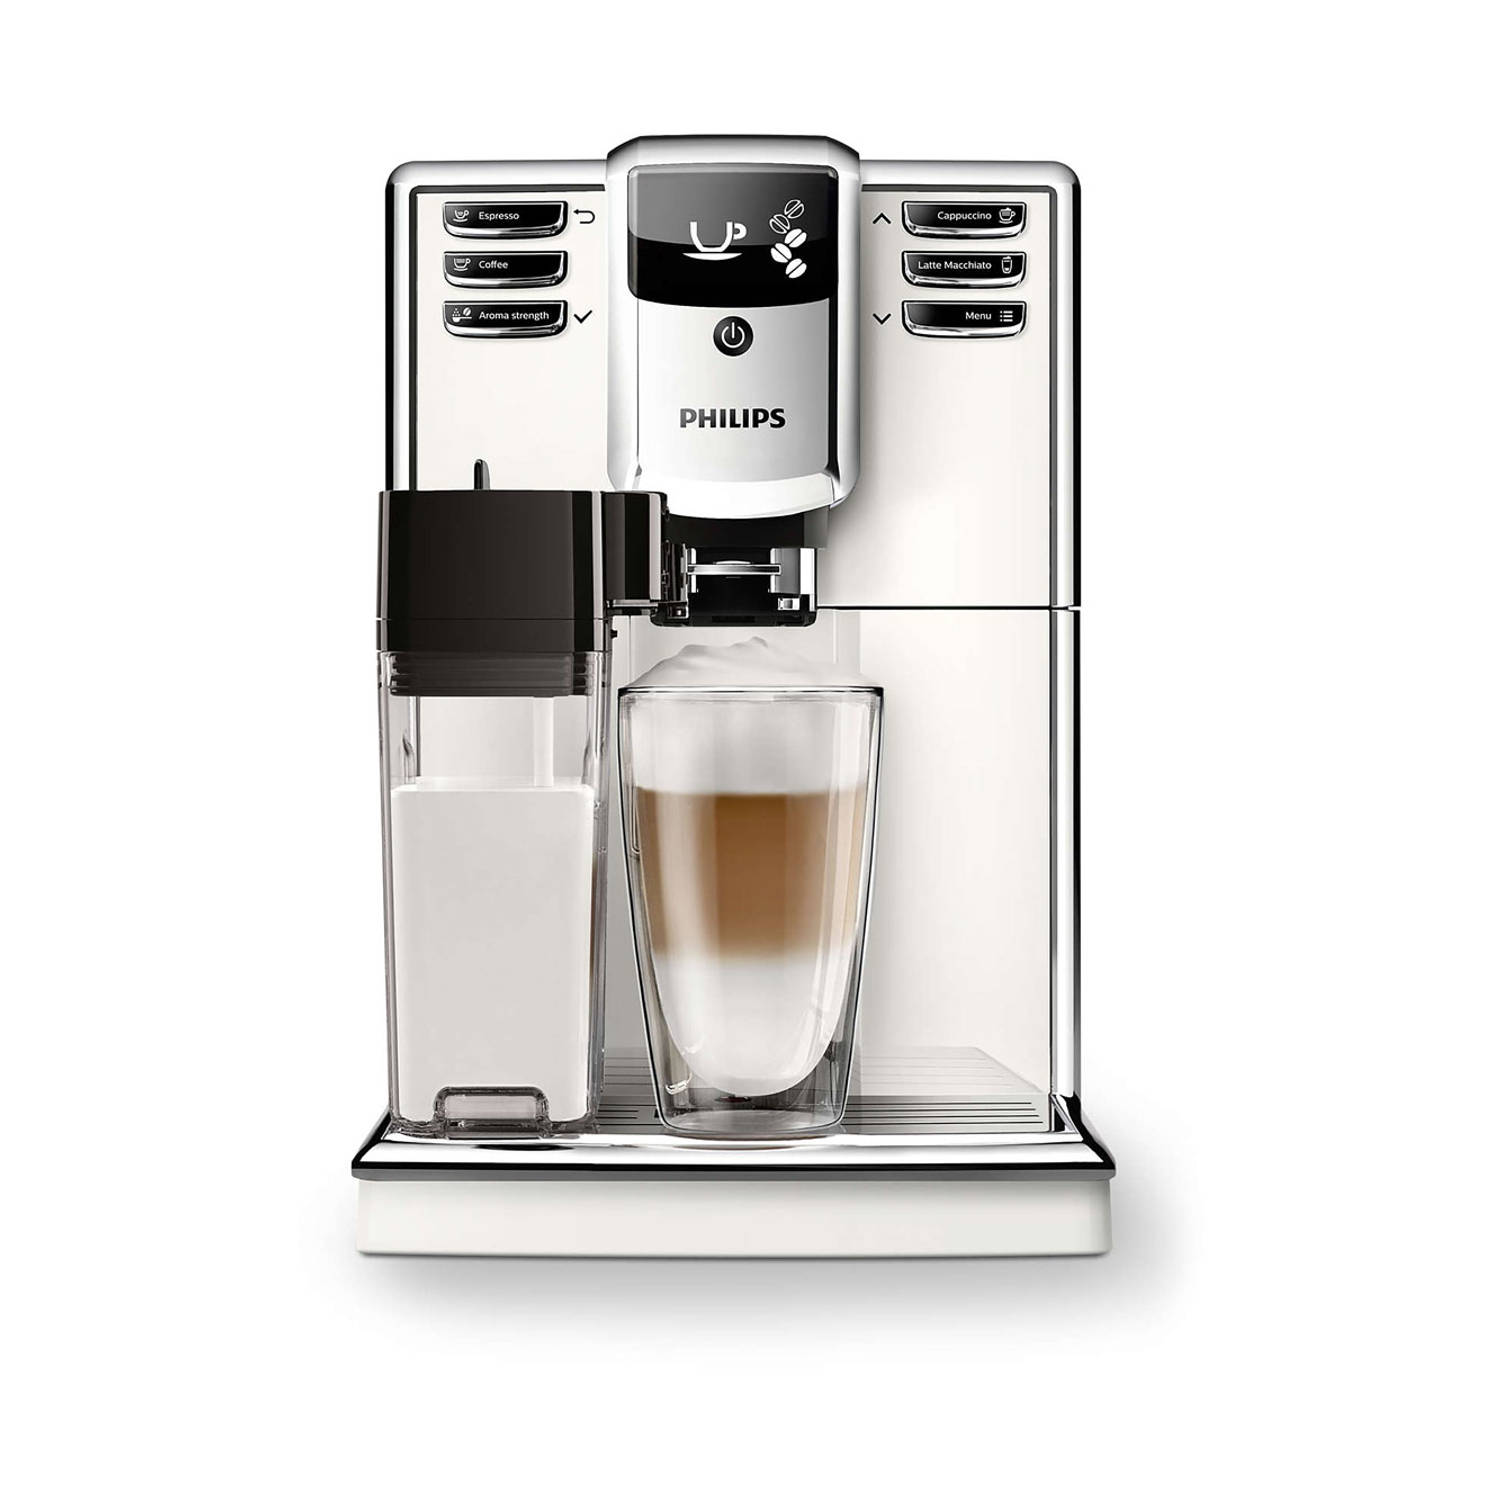 Philips volautomaat espressomachine 5000 series EP5361/10 - wit